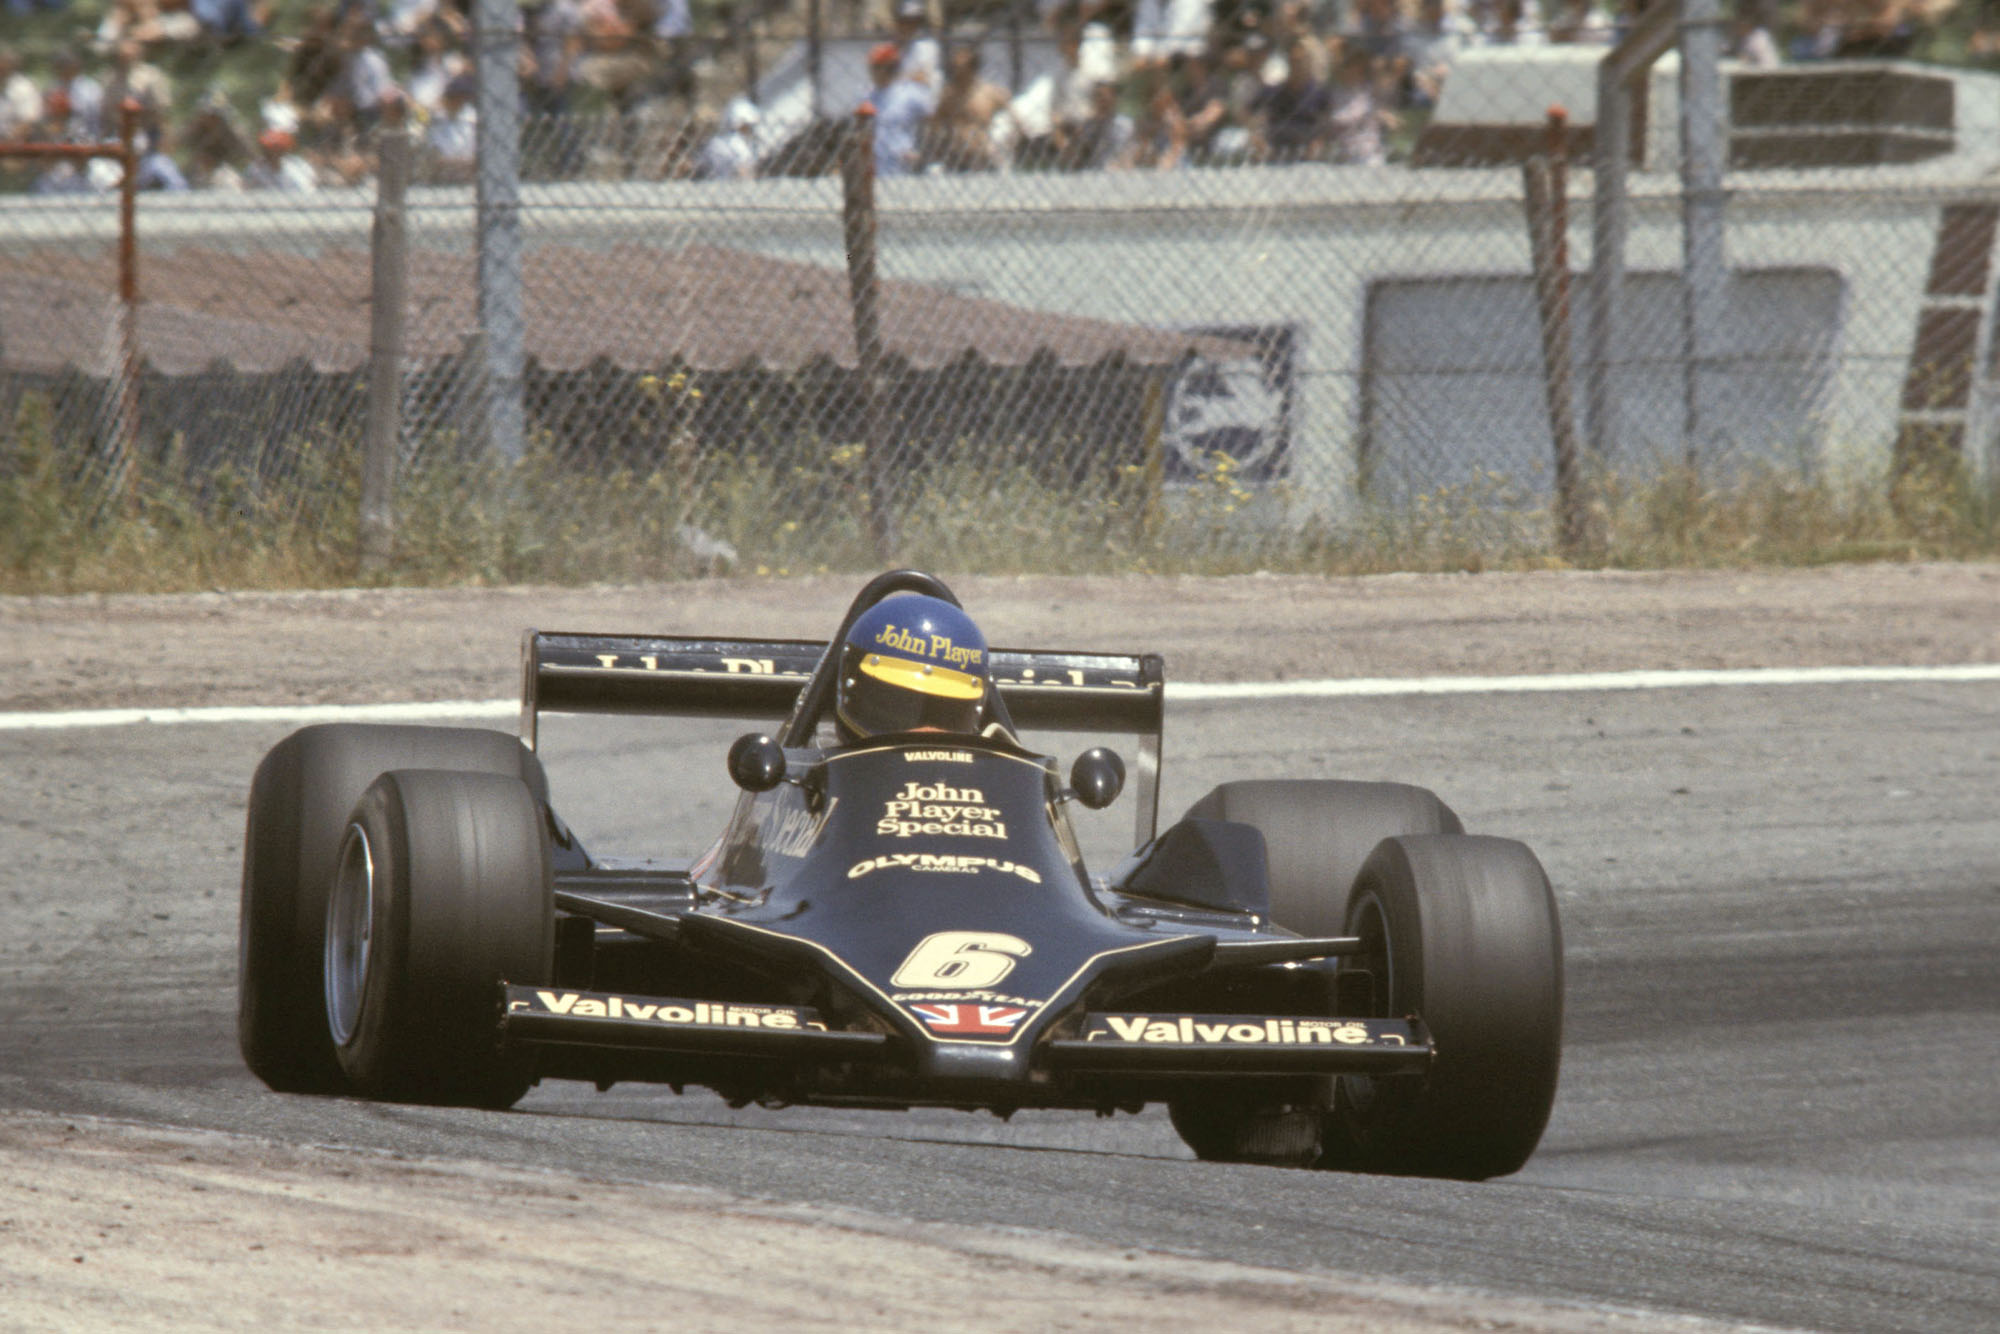 Ronnie Peterson (Lotus) competing at the 1978 South African Grand Prix, Kyalami.